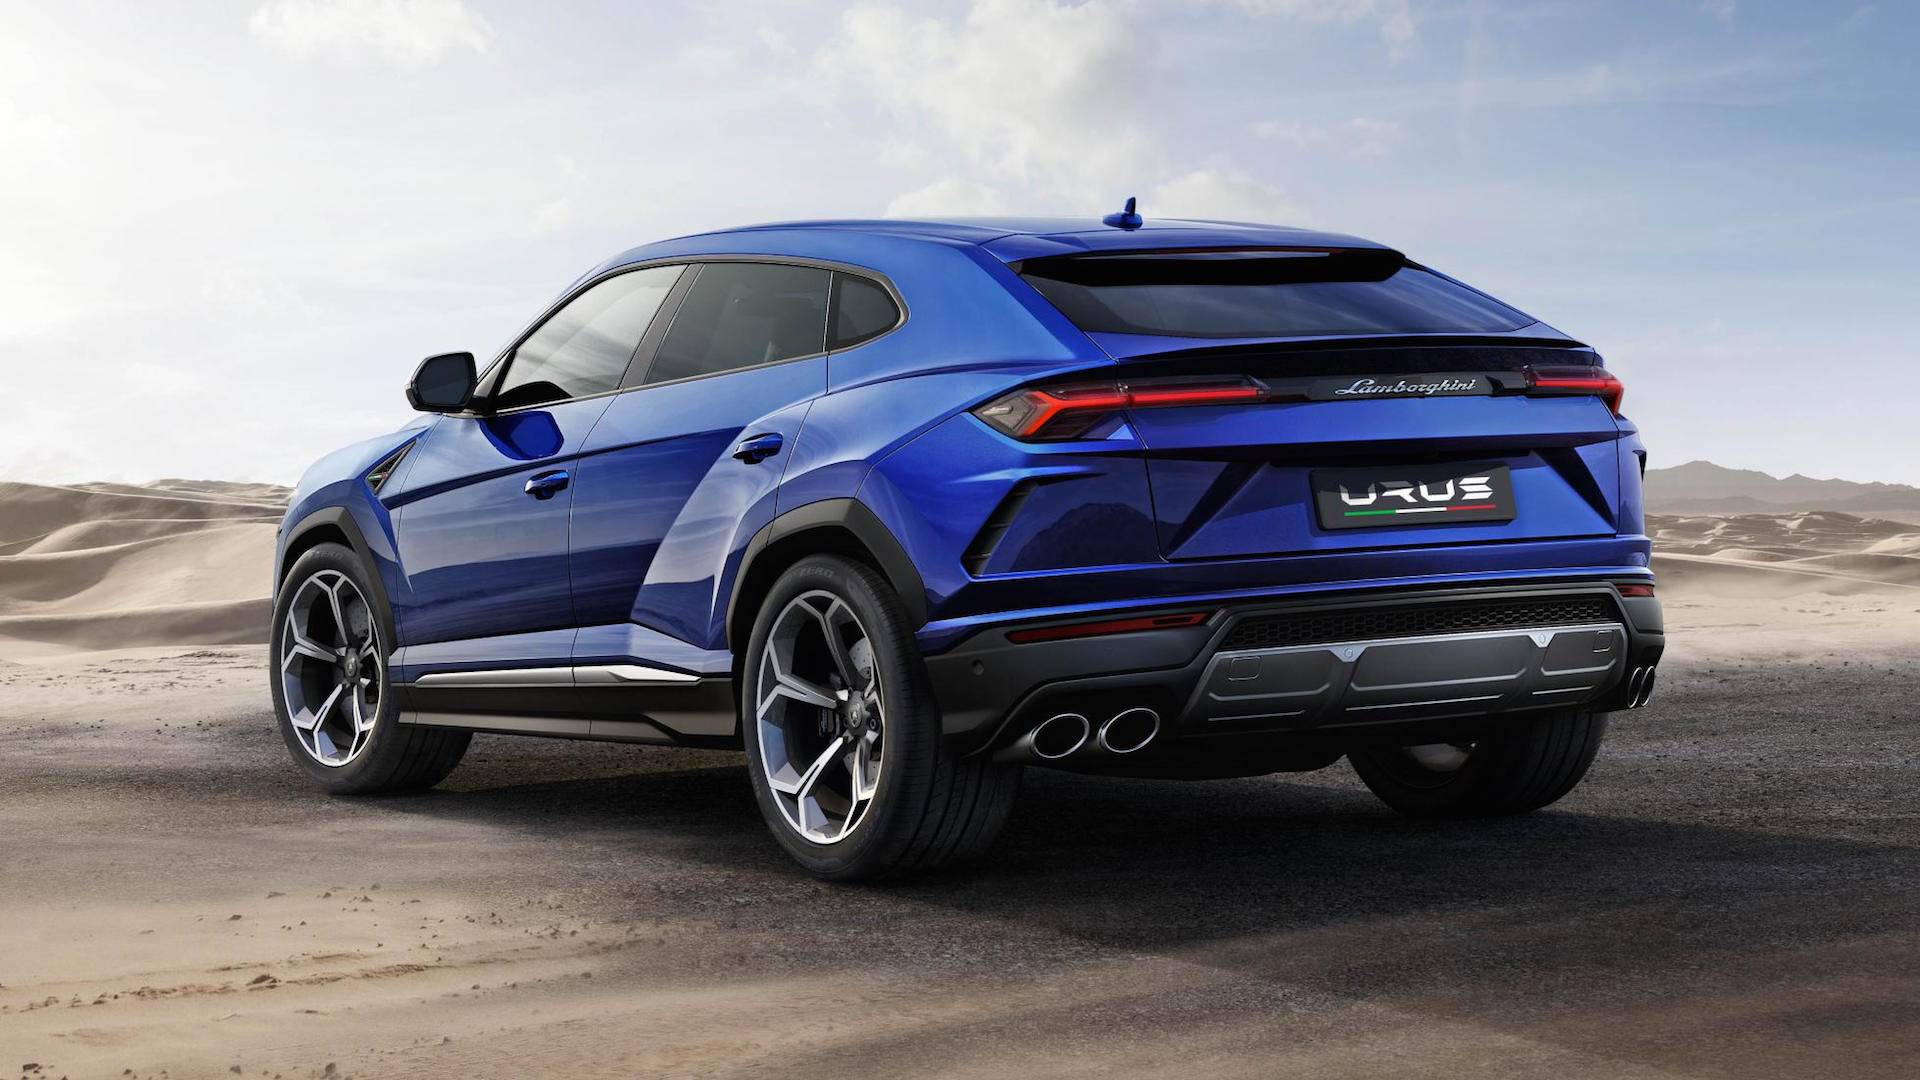 Lamborghini Happy To Report Urus Is A Hit Average Price Is 240k